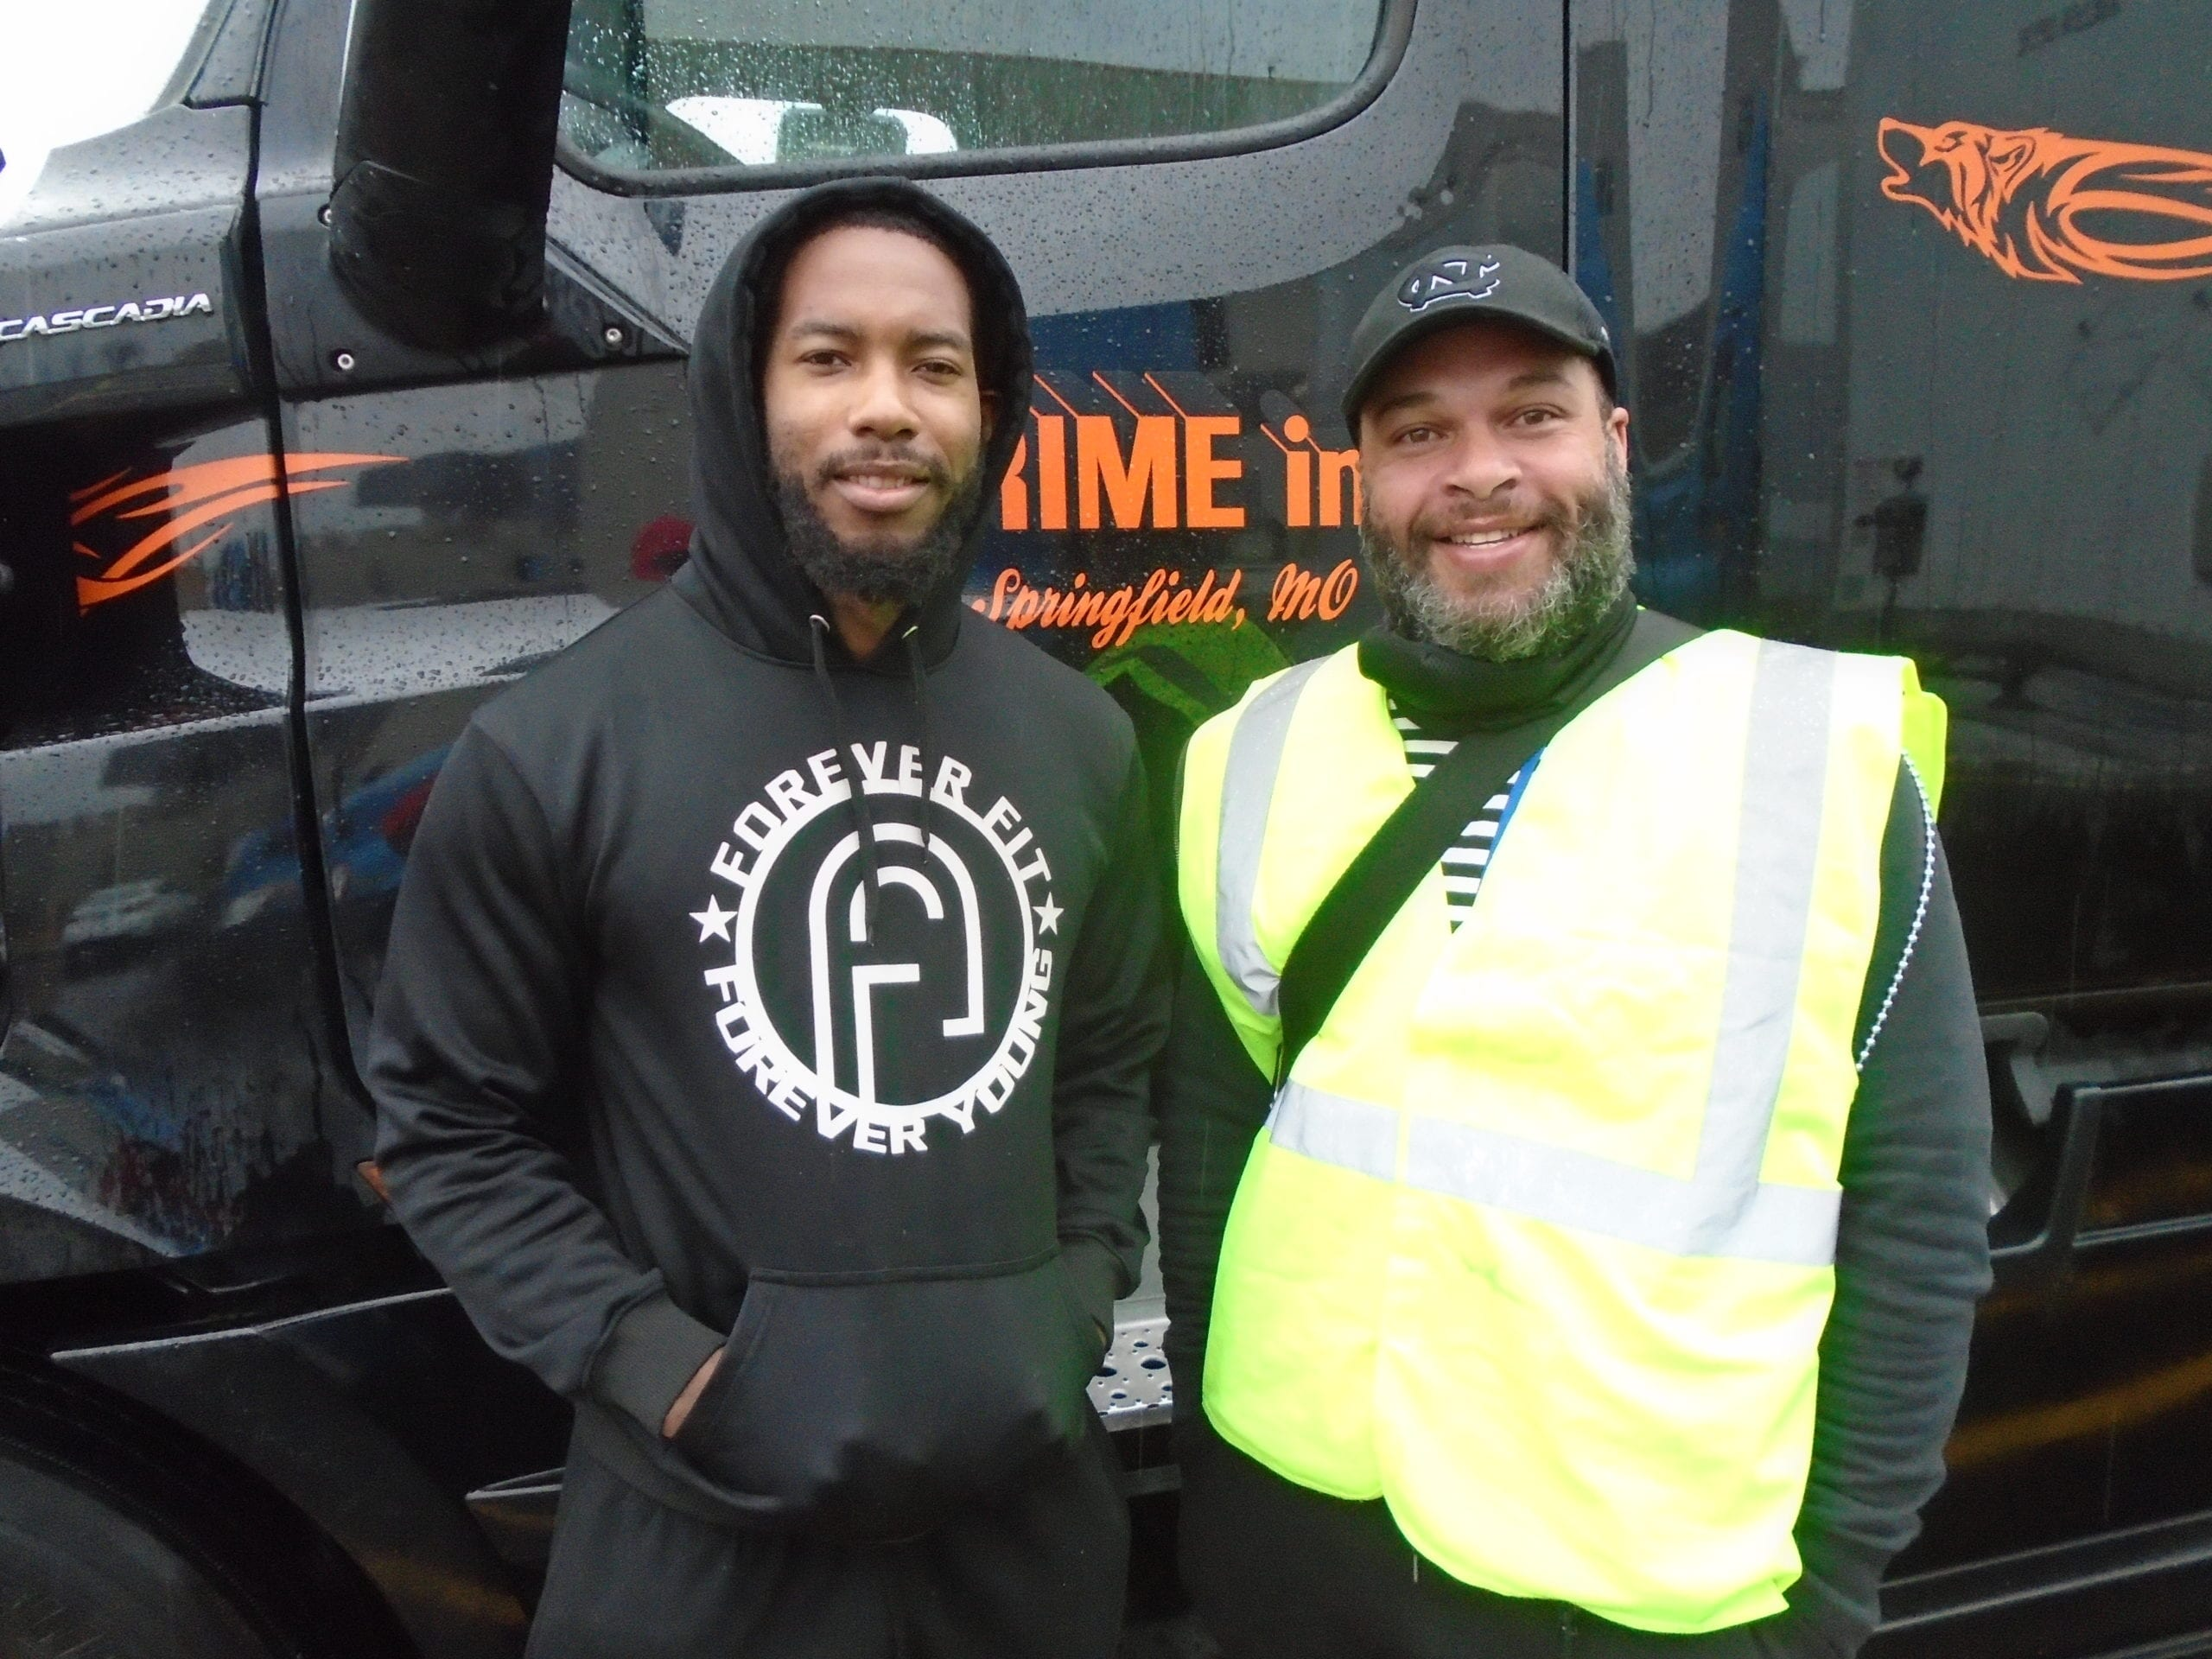 Prime Inc. CDL Instructor and Student Trifecta